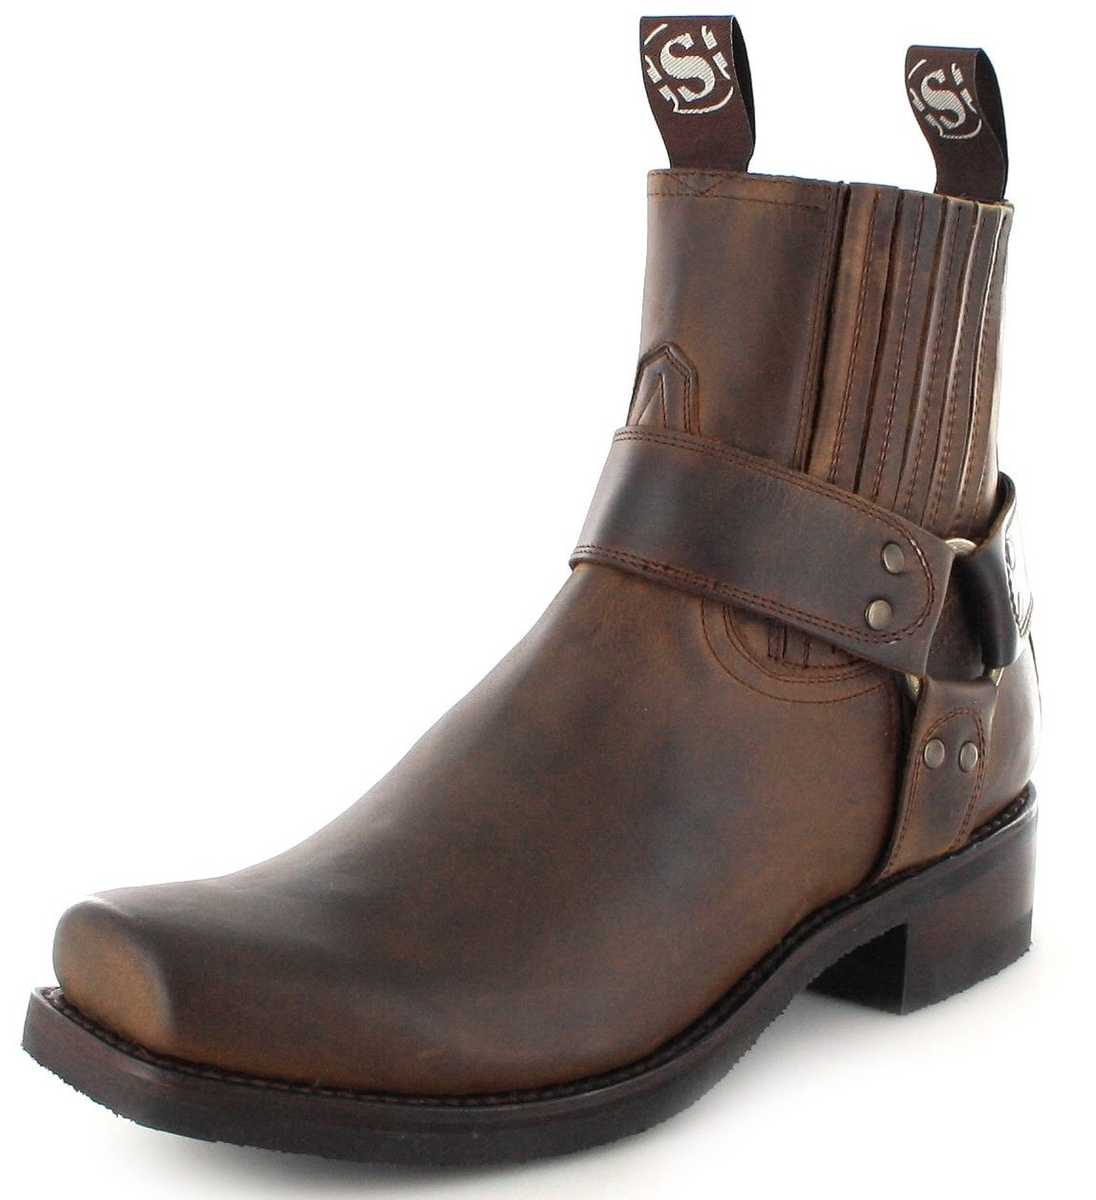 Sendra Boots 8286 Tang biker ankle boot with rubber sole- brown